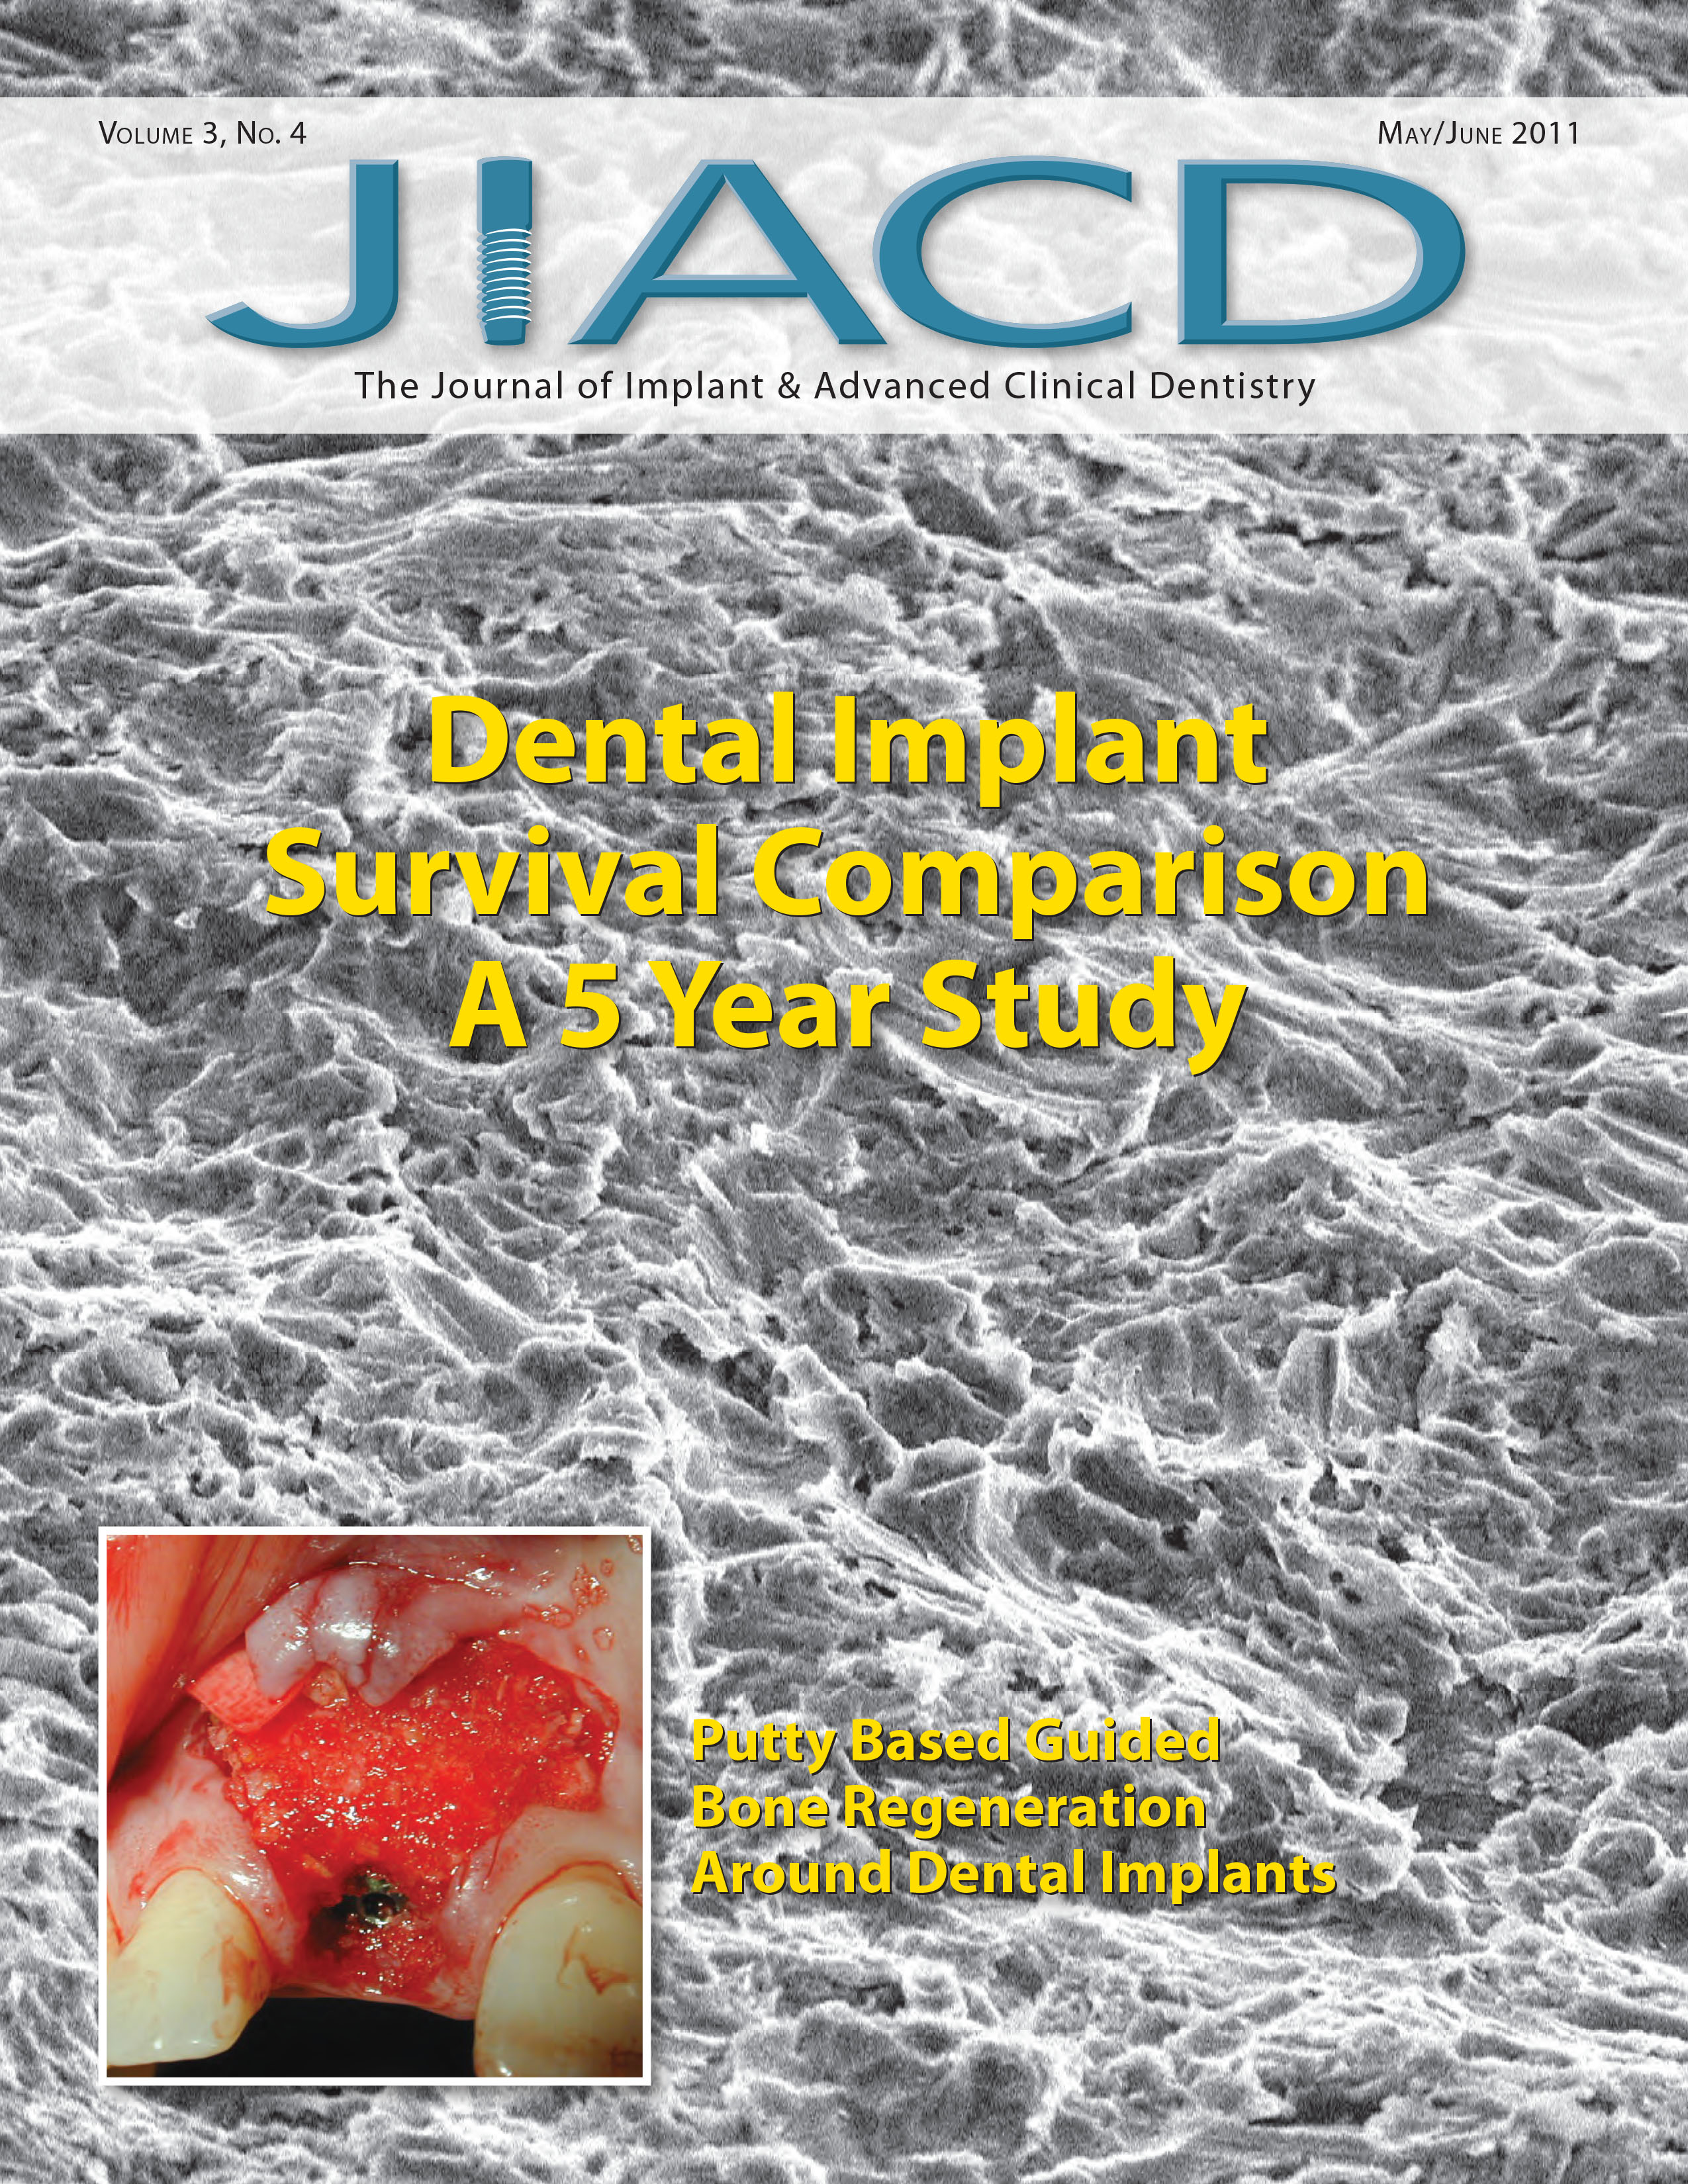 Dental Implant Survival Comparison A 5 Year Study